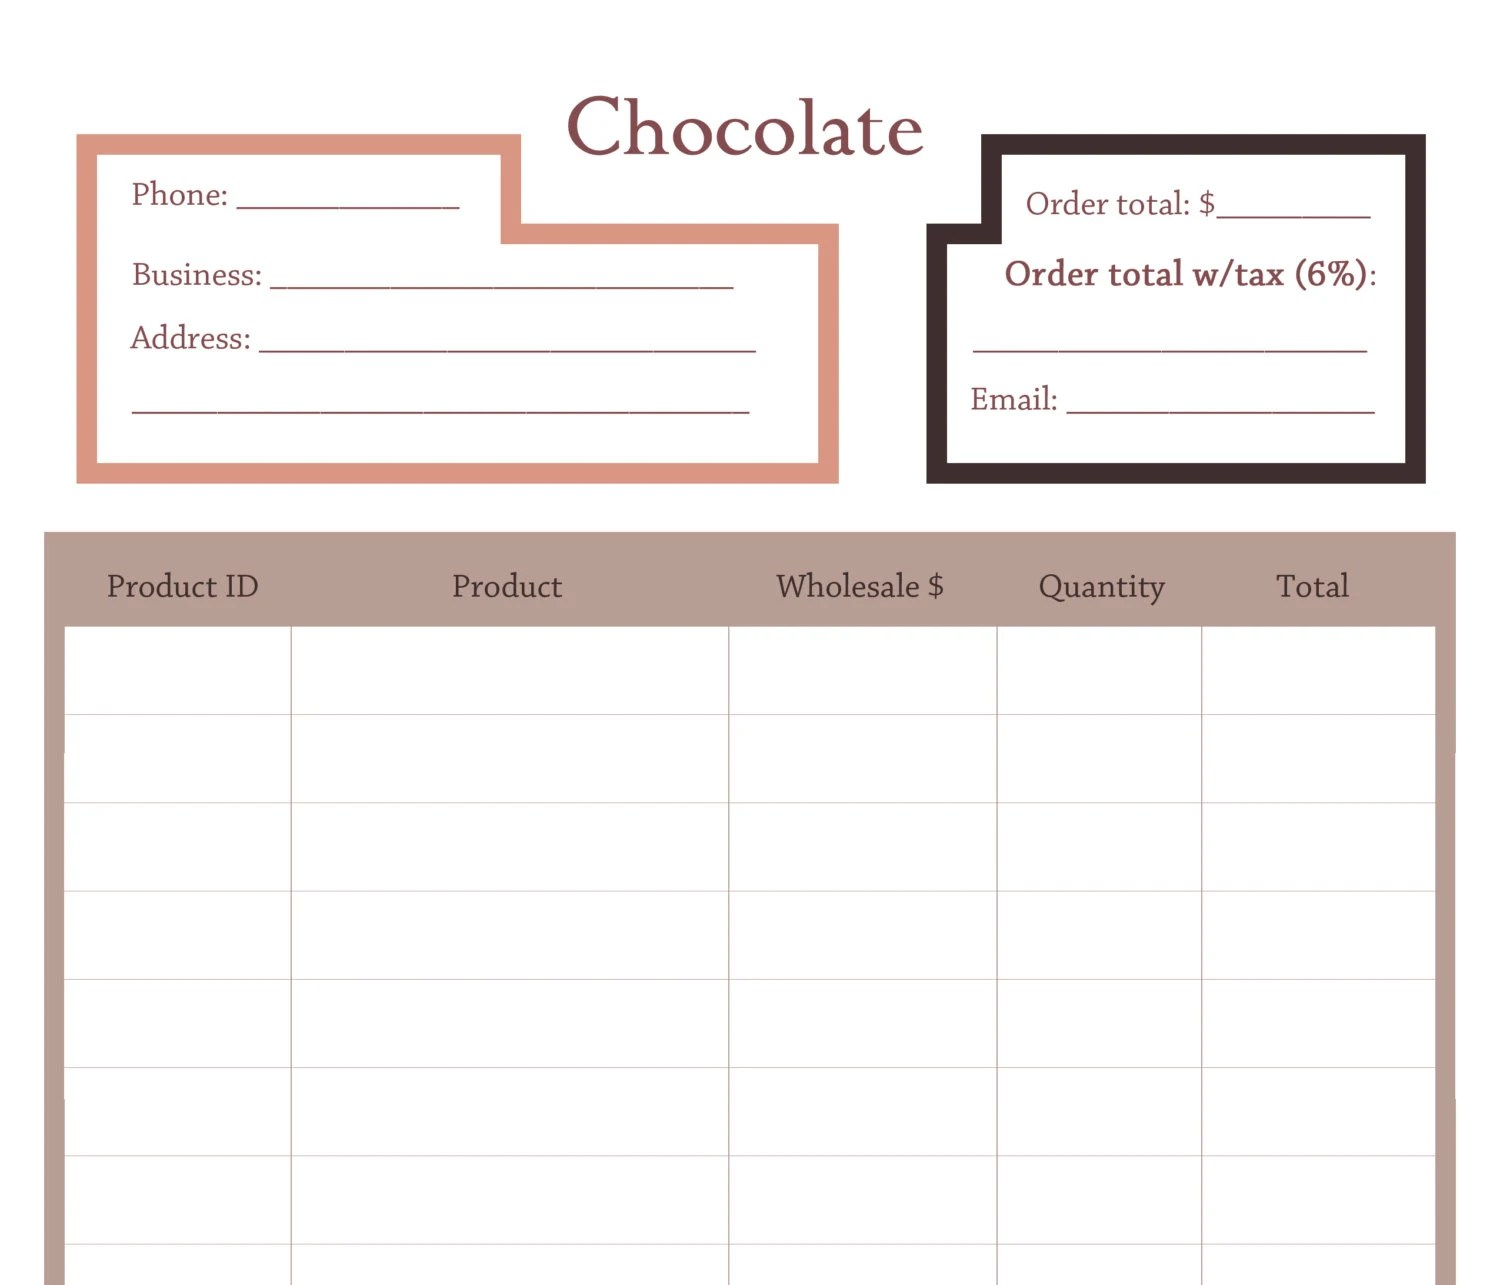 Simple Order Form Add New Form How To Create A Simple Order Form In